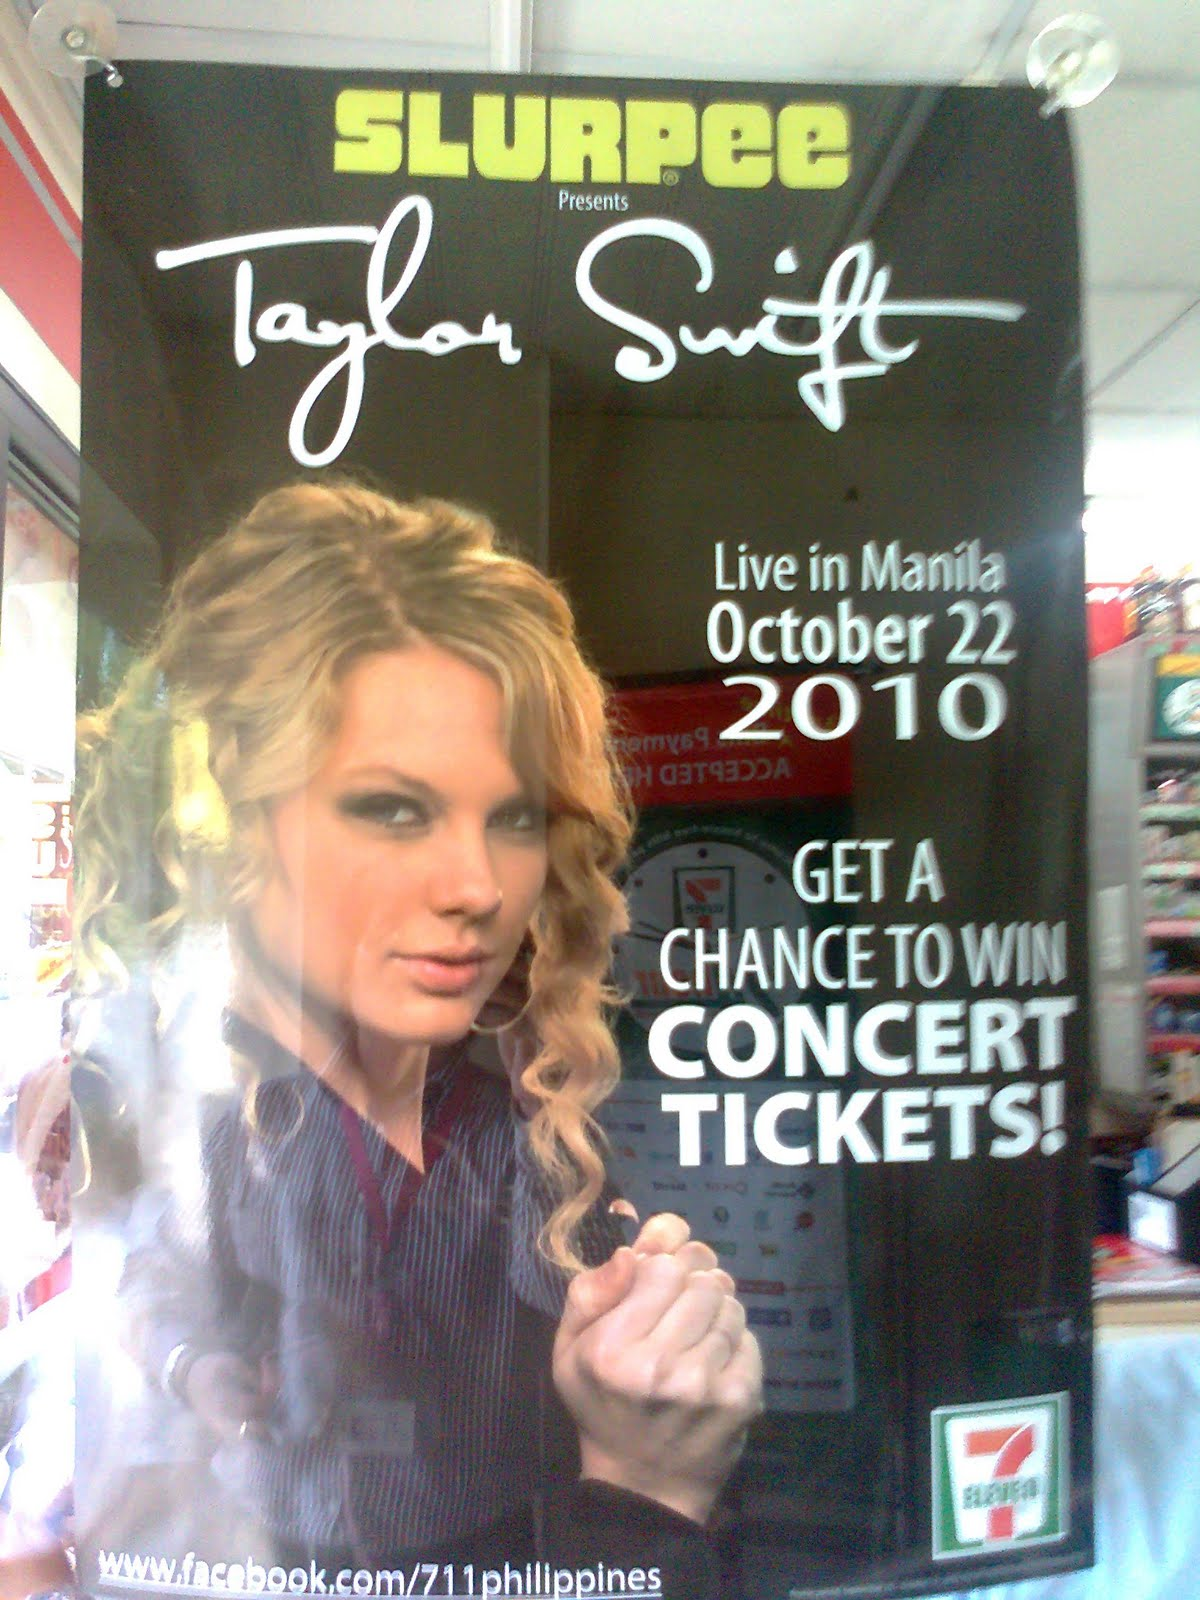 Taylor%2BSwift%2Blive%2Bin%2BManila%2BOct.%2B22,%2B2010 You can comment with funny, naughty, sexy fantasy lines but please do not ...